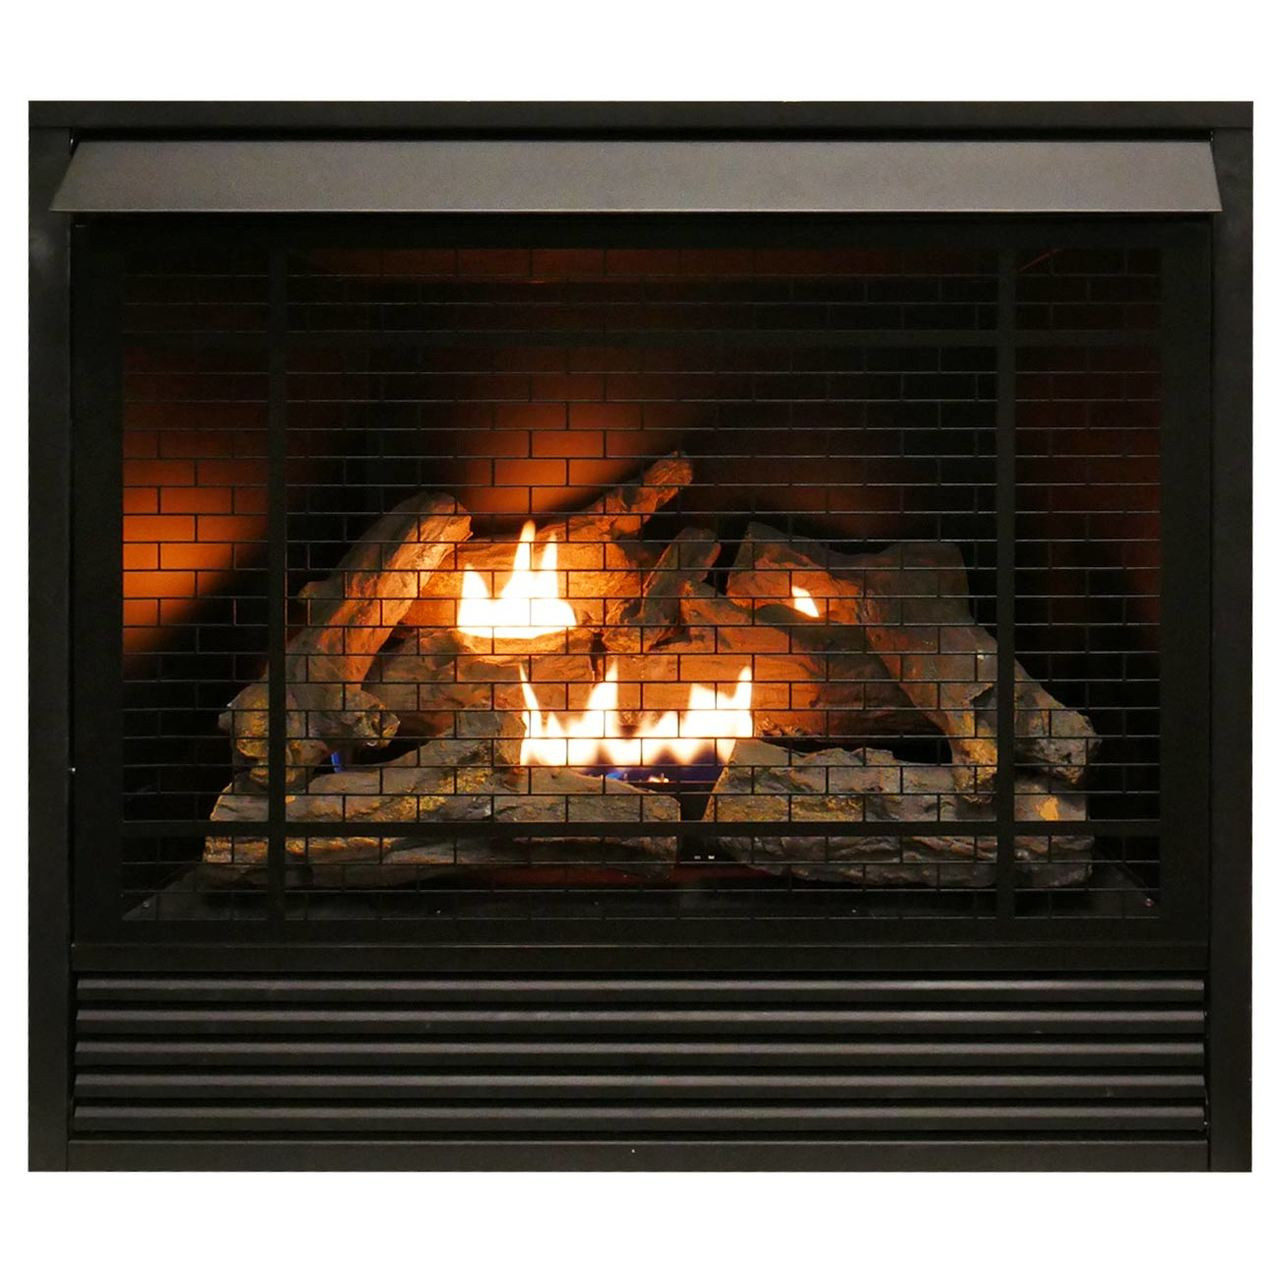 Wholesale Fireplace Inserts Duluth Forge Dual Fuel Ventless Fireplace Insert 32 000 Btu Remote Control Fdi32r A